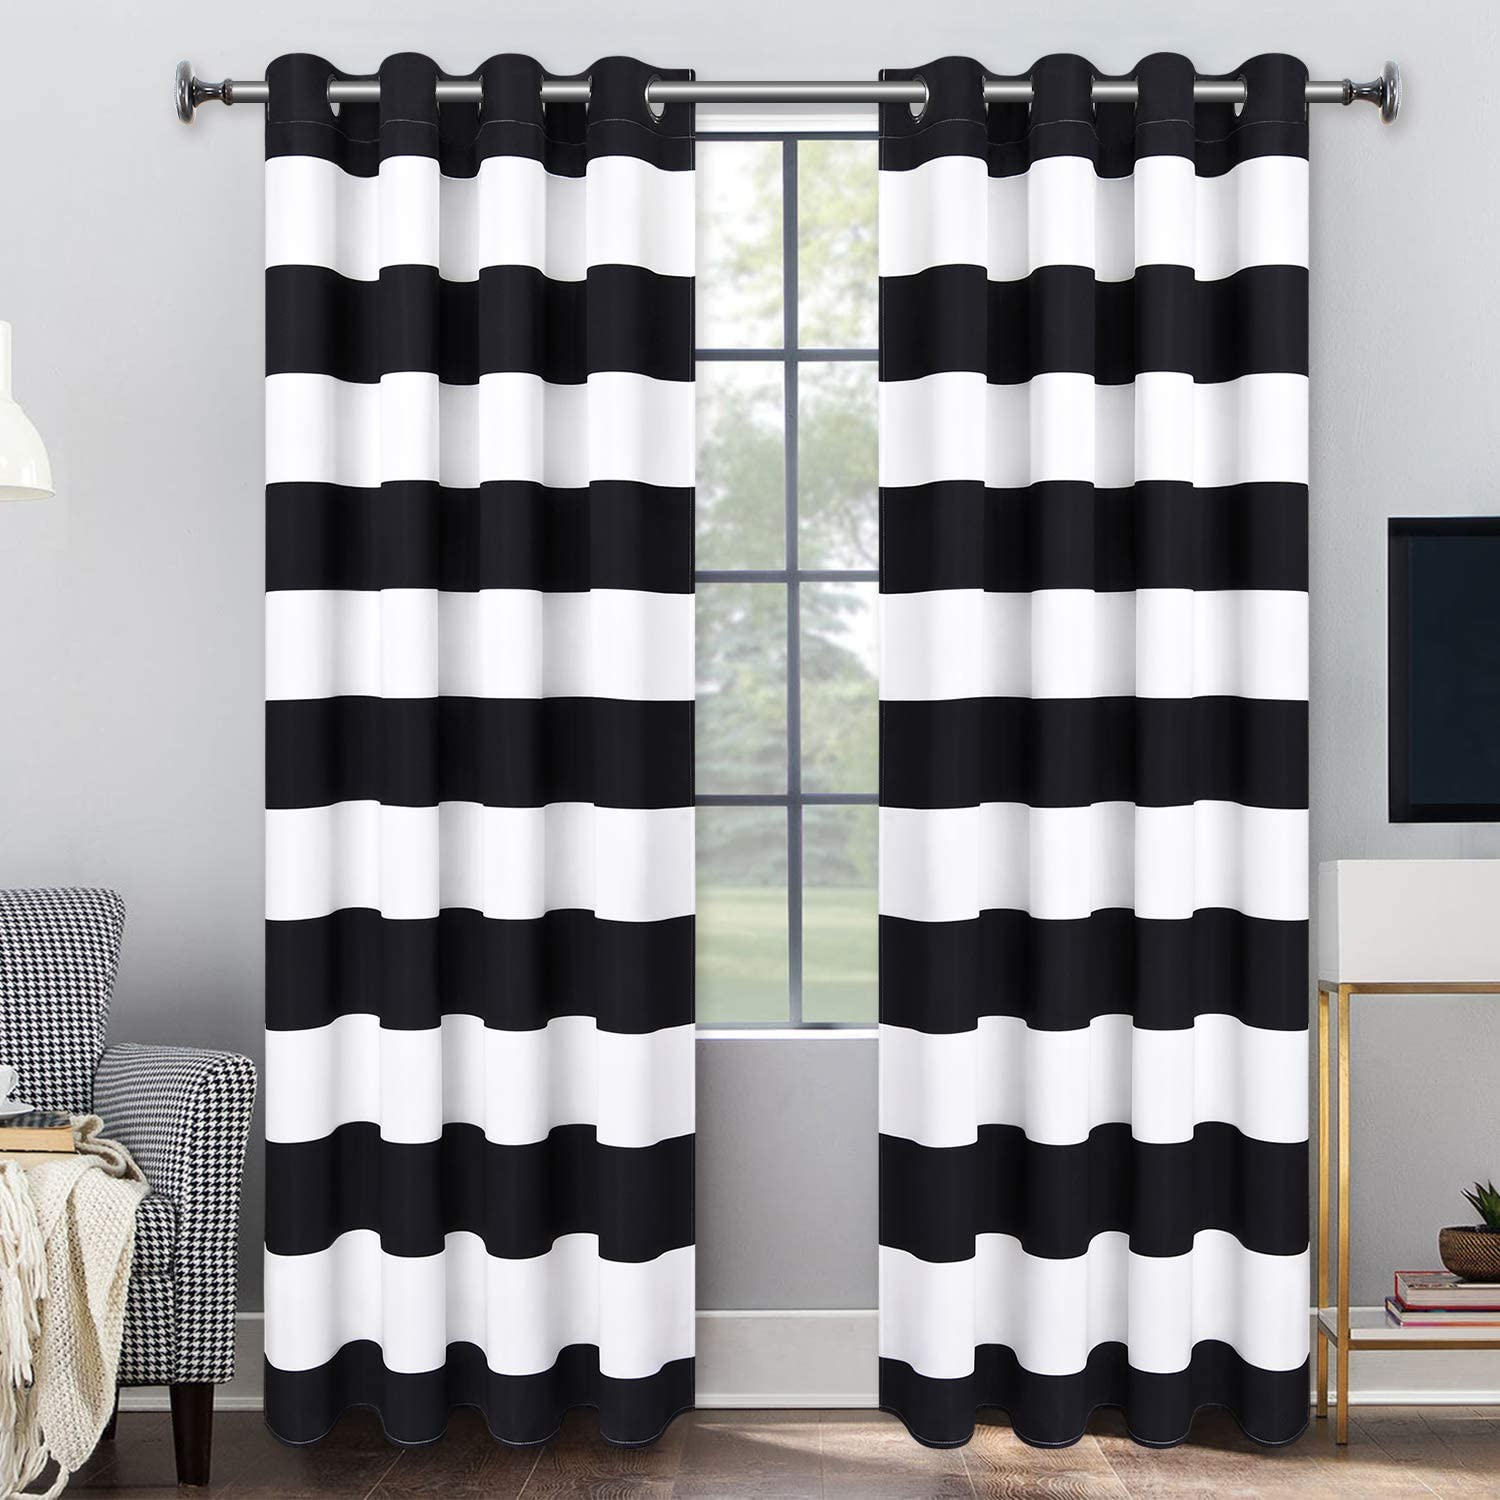 VERTKREA Stripe Window Curtain Striped Room Darkening Grommet Curtains 52 × 63 Inches Stripes Drapes for Bedroom Living Room, Black, Set of 2 Panels